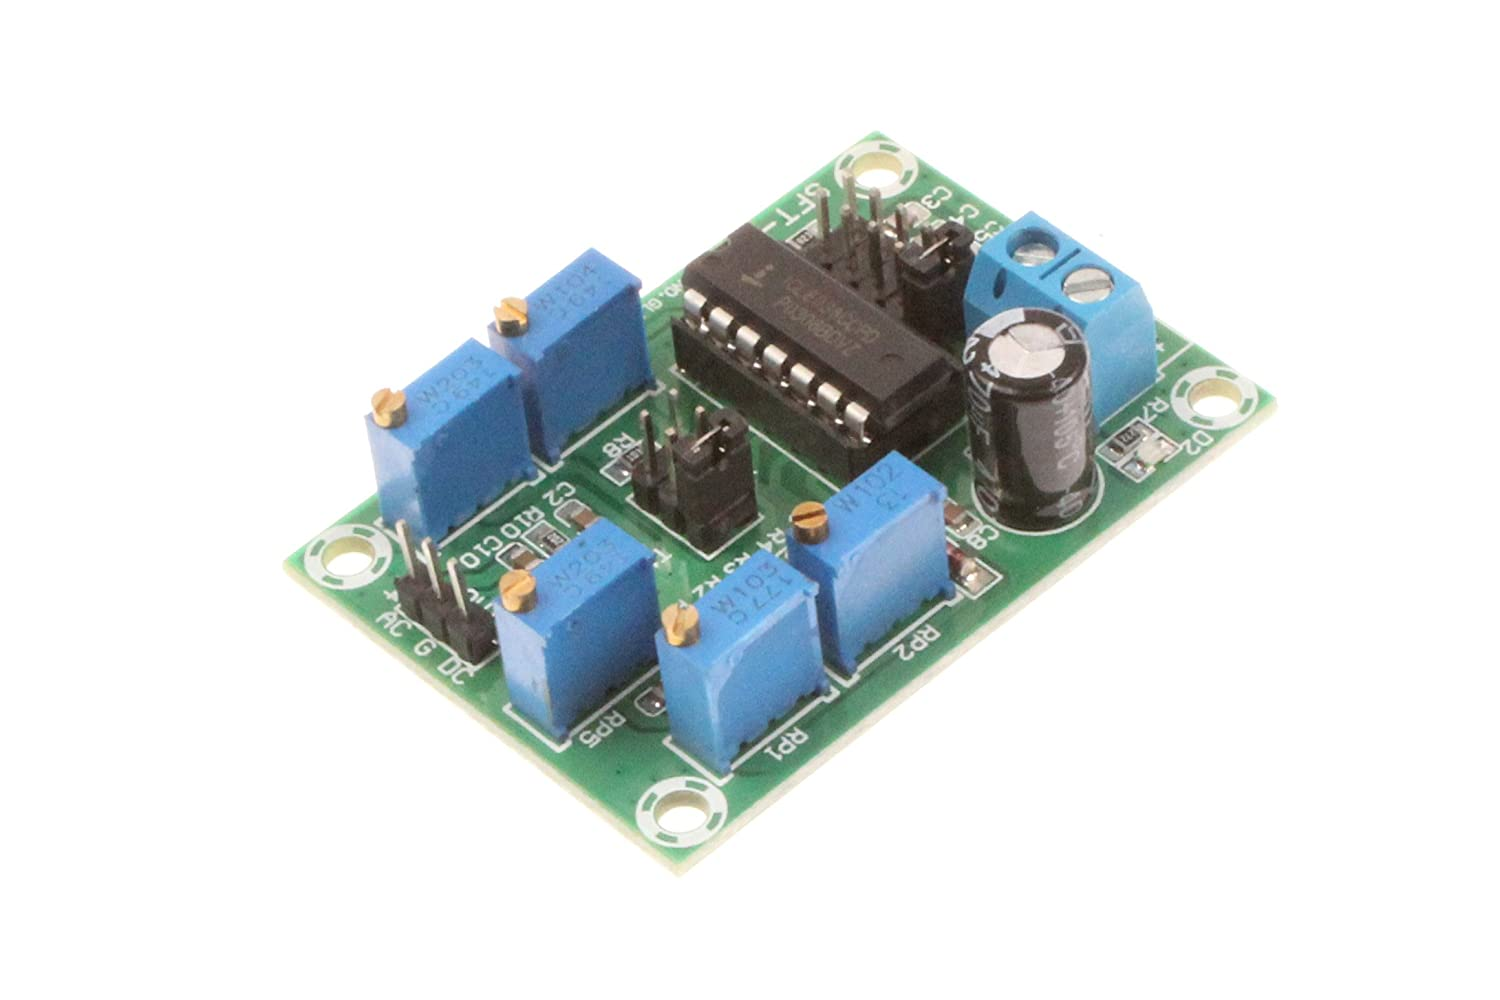 Noyito Icl8038 Signal Generator Module Medium Low Frequency Source Trianglewave Circuit Sine Wave Triangle Square Triple